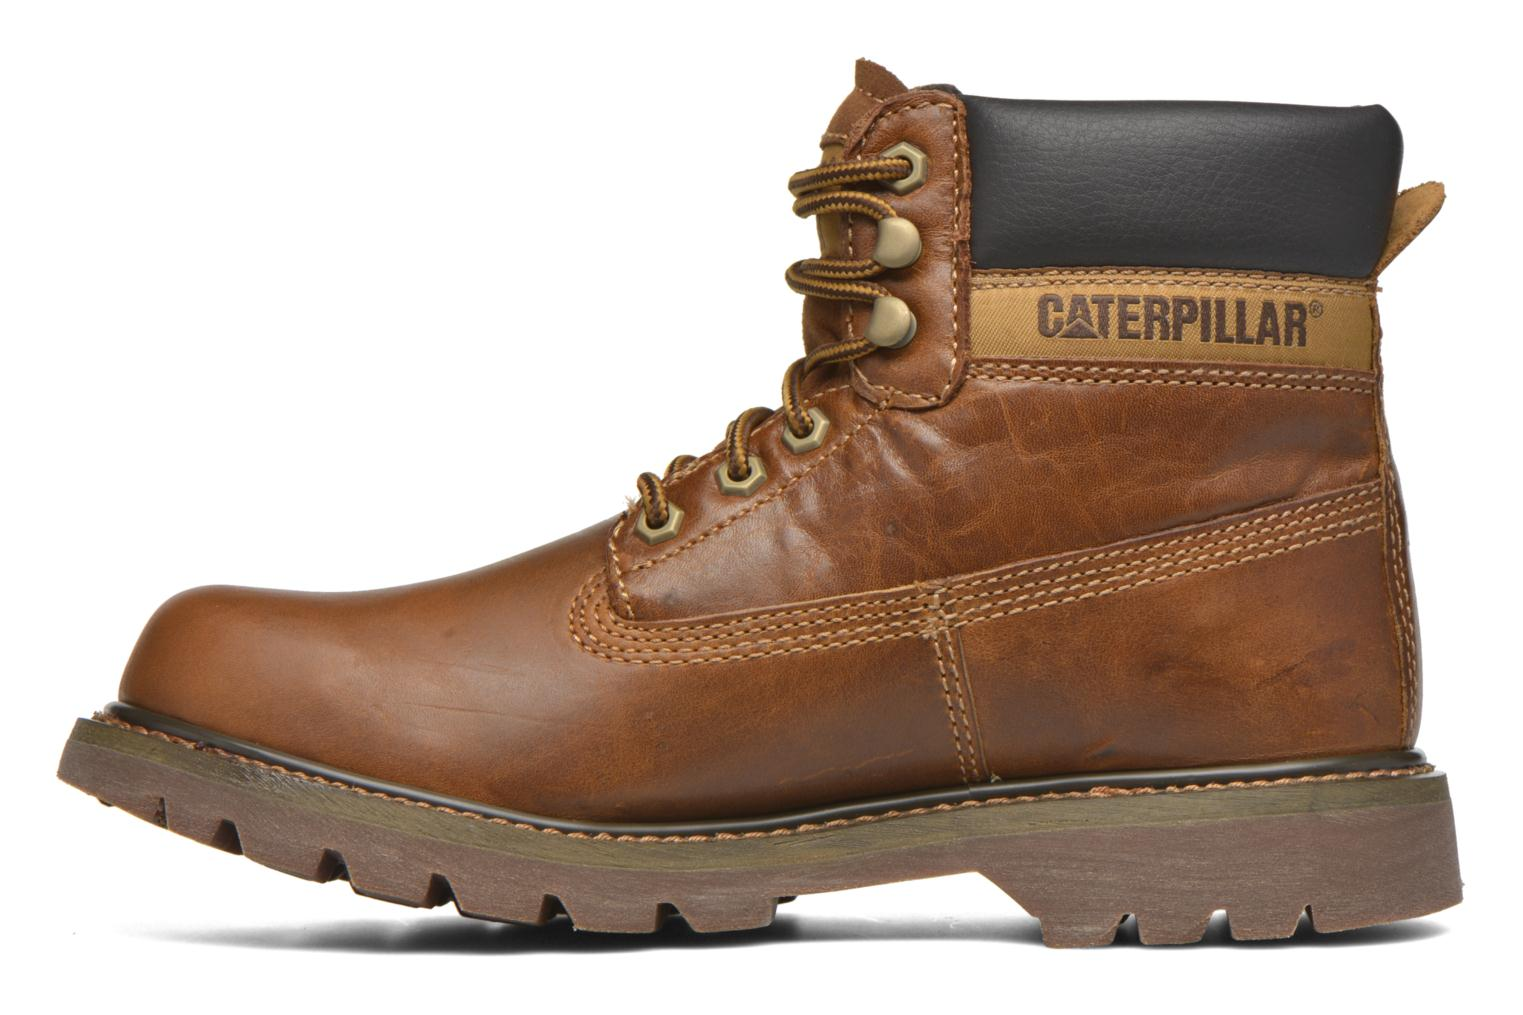 Bottines et boots Caterpillar Colorado Marron vue face